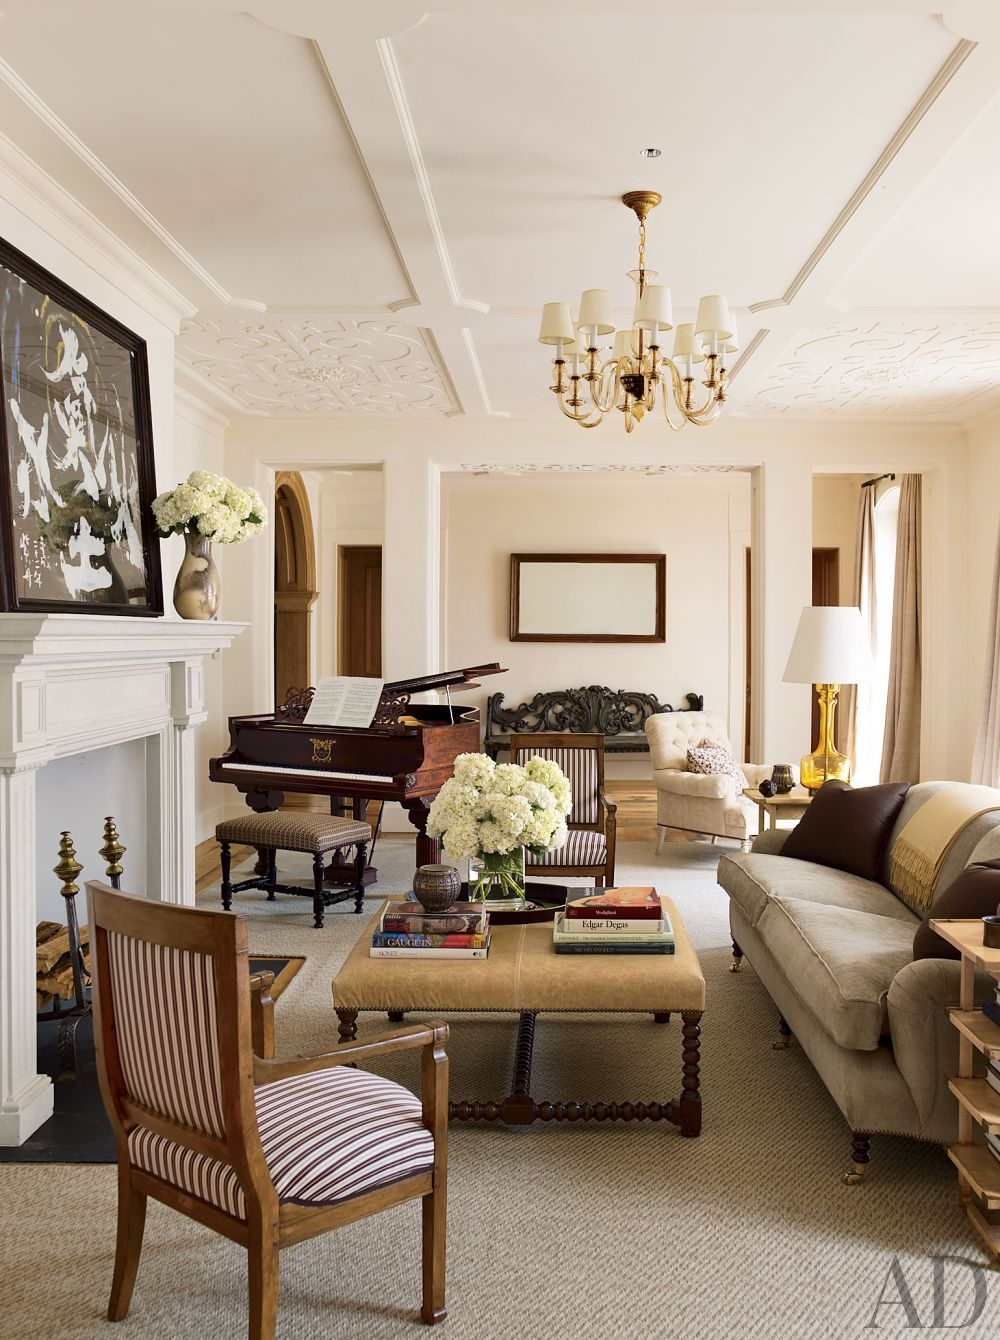 30 Great Traditional Living Room Design Ideas - Decoration ... on Living Room Style Ideas  id=72951